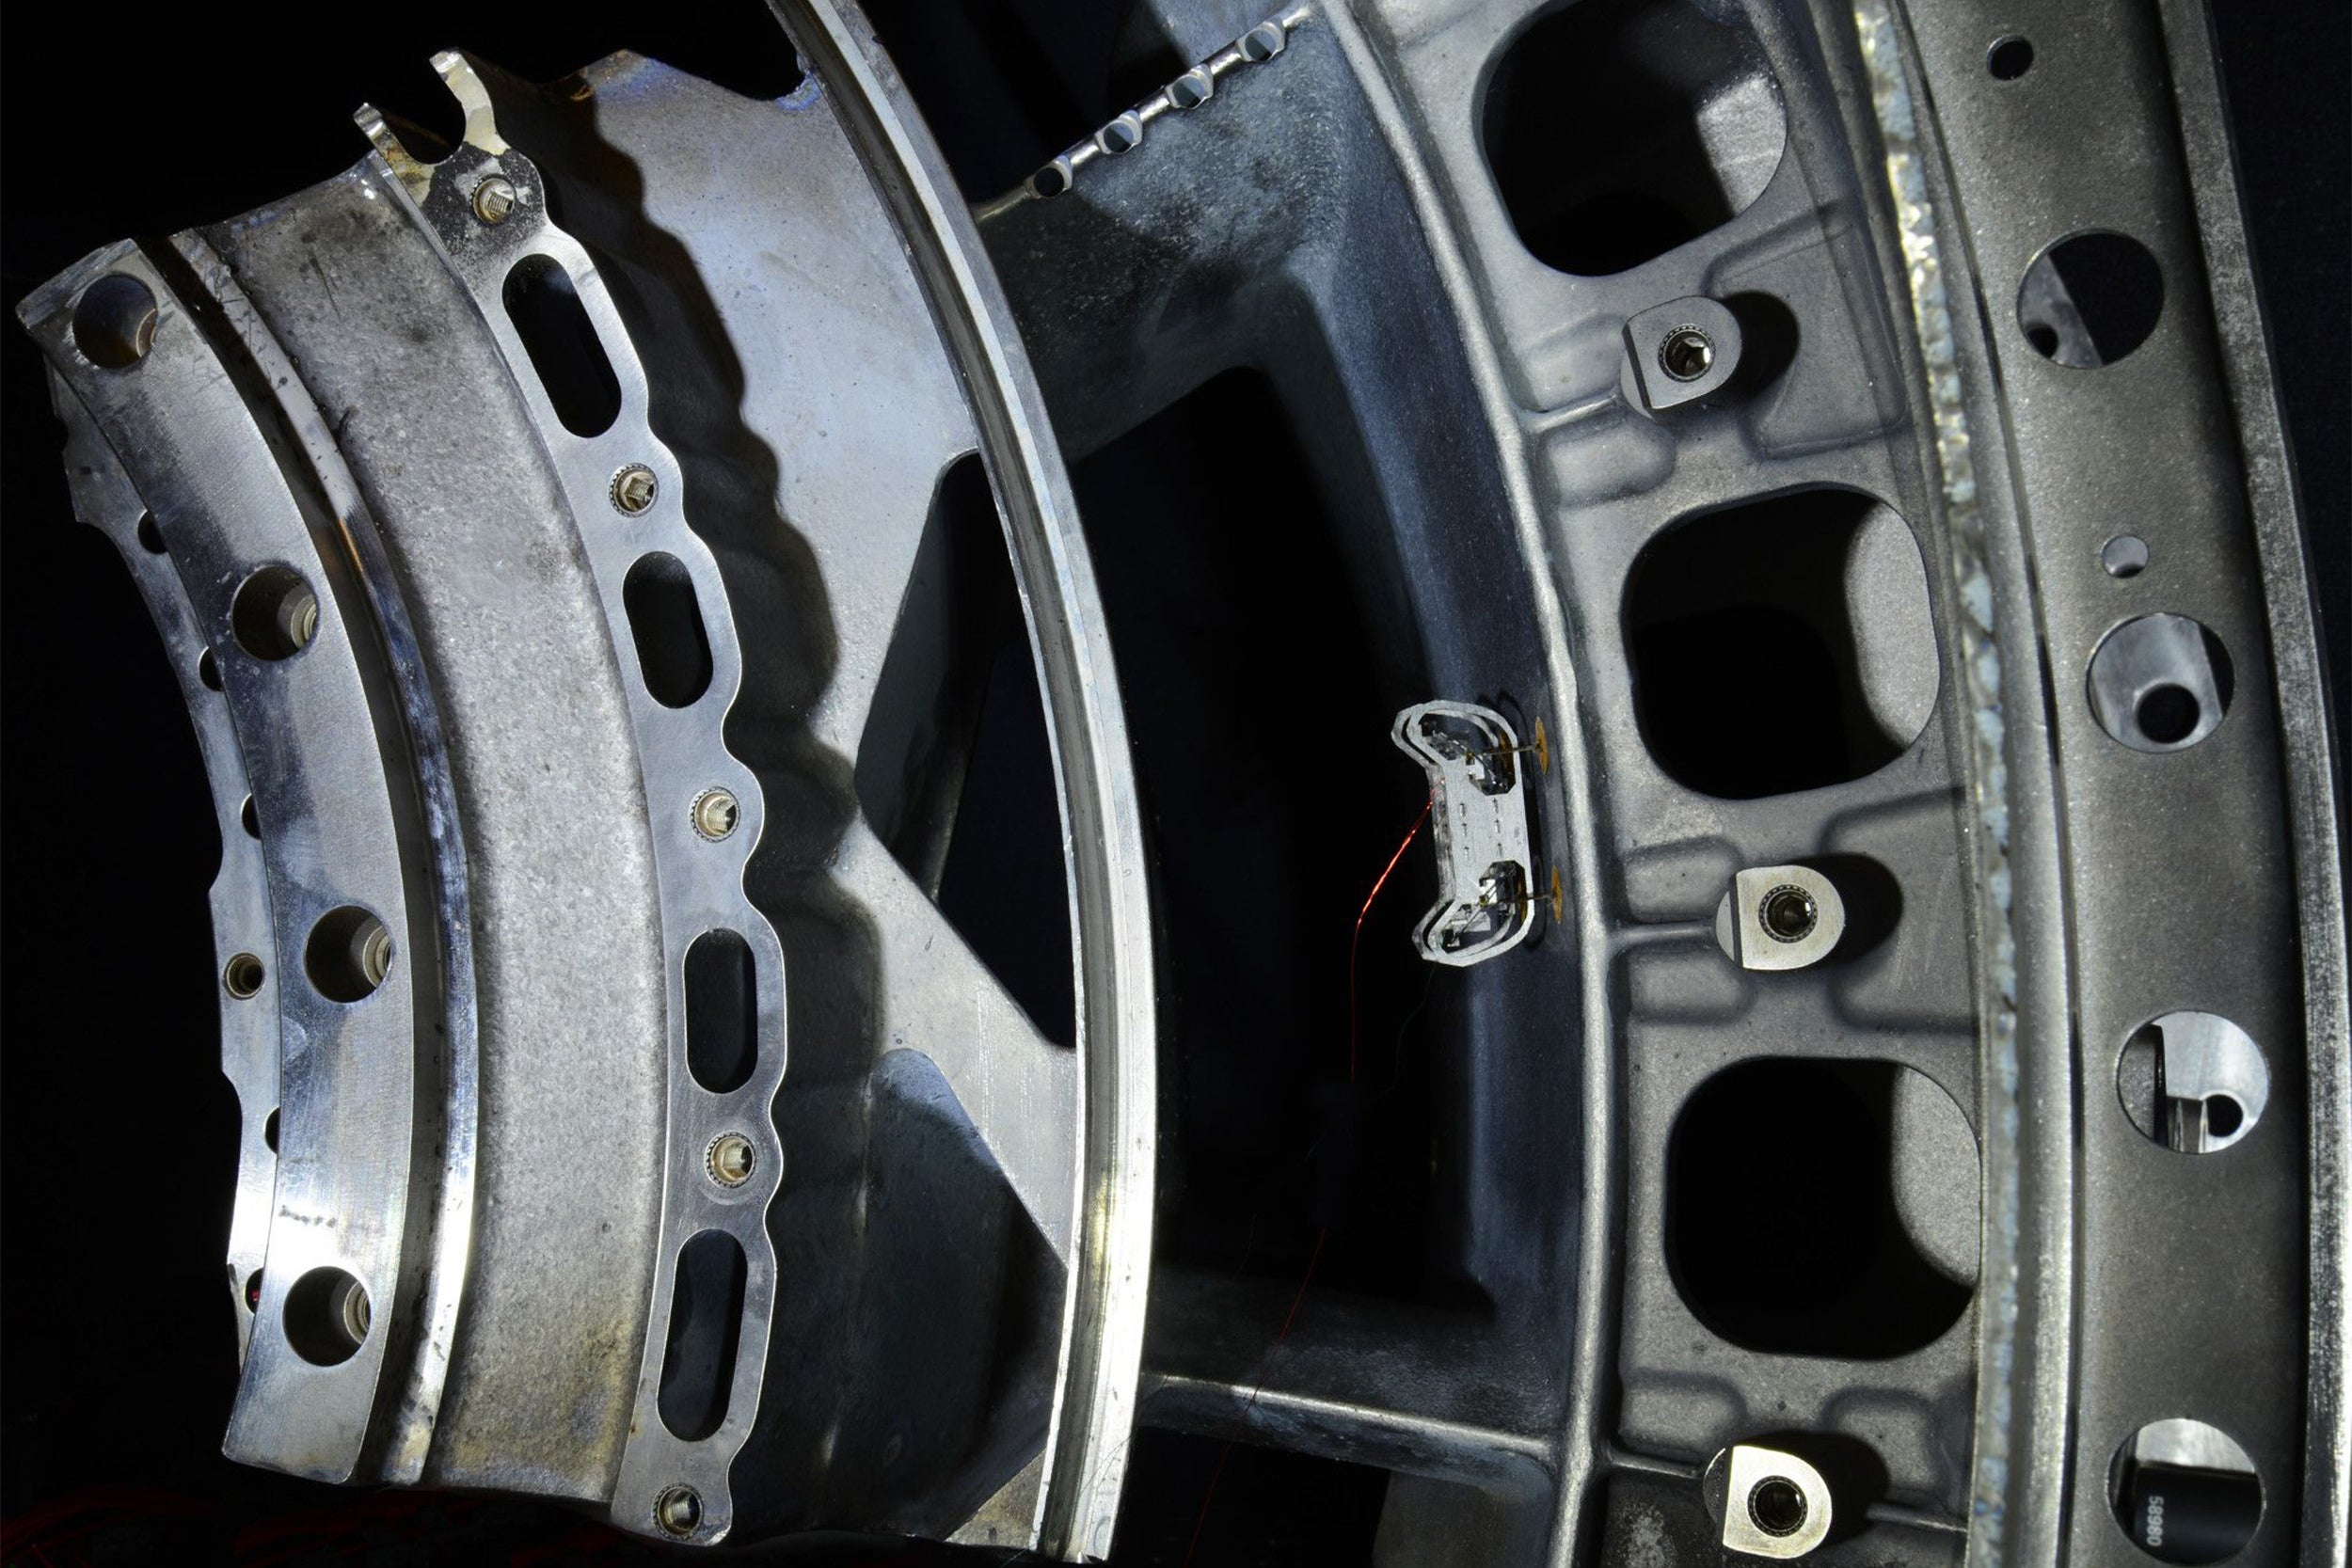 HAMR-E uses electroadhesive pads on its feet and a special gait pattern to climb vertical, inverted, and curved surfaces, like the inside of this jet engine.